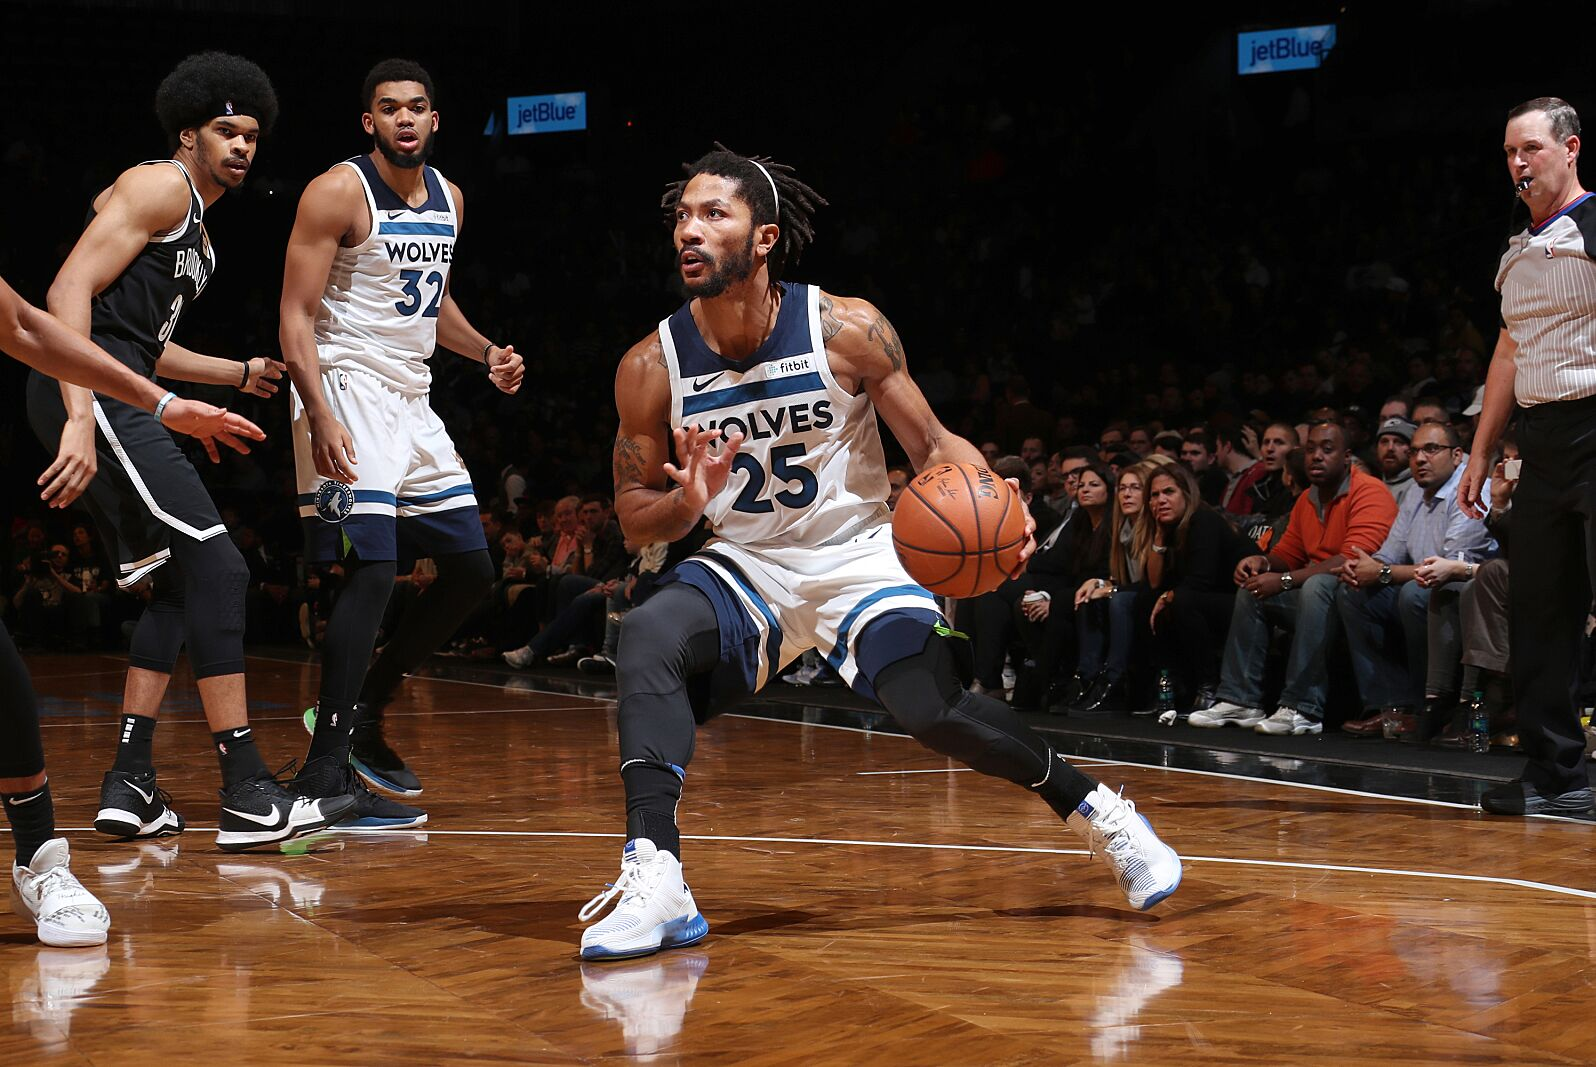 Minnesota Timberwolves: Buy or sell with 2019 free agents